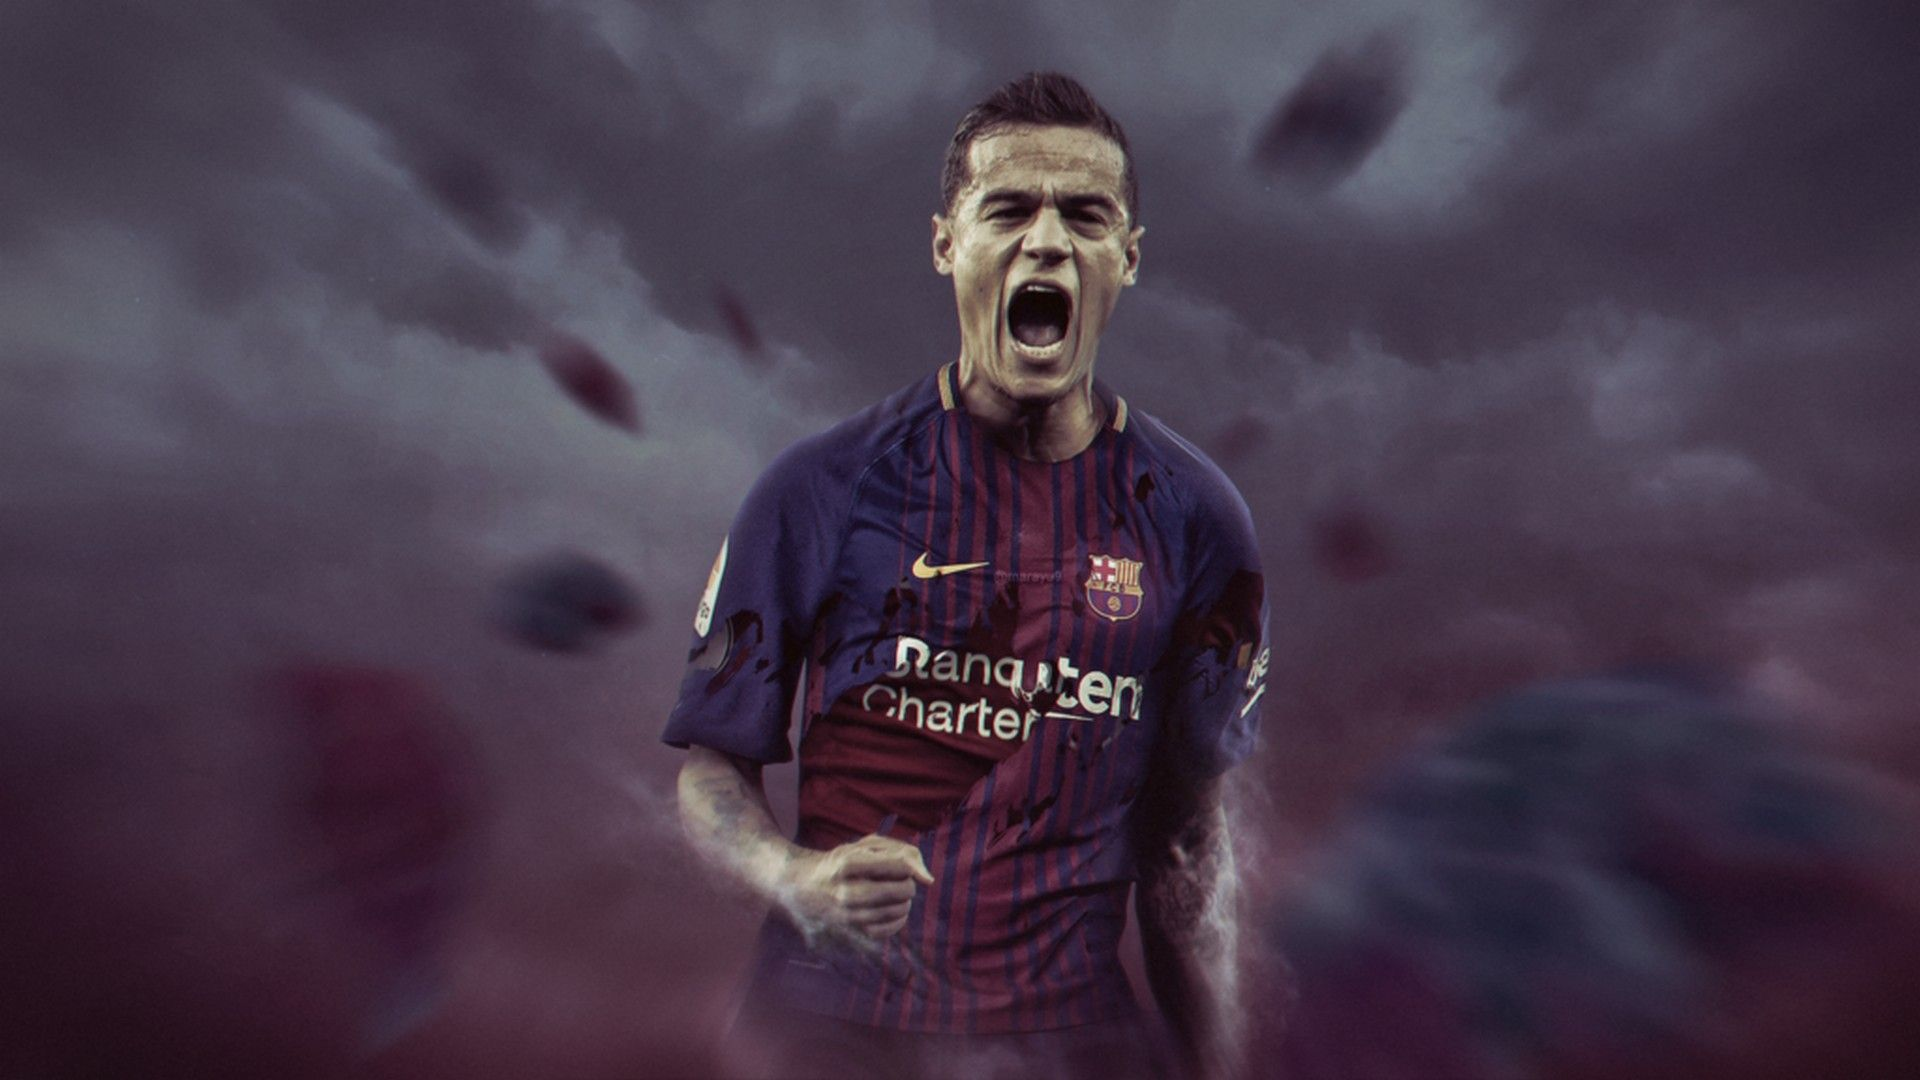 Philippe coutinho barcelona wallpaper hd wallpaper - Coutinho wallpaper hd ...